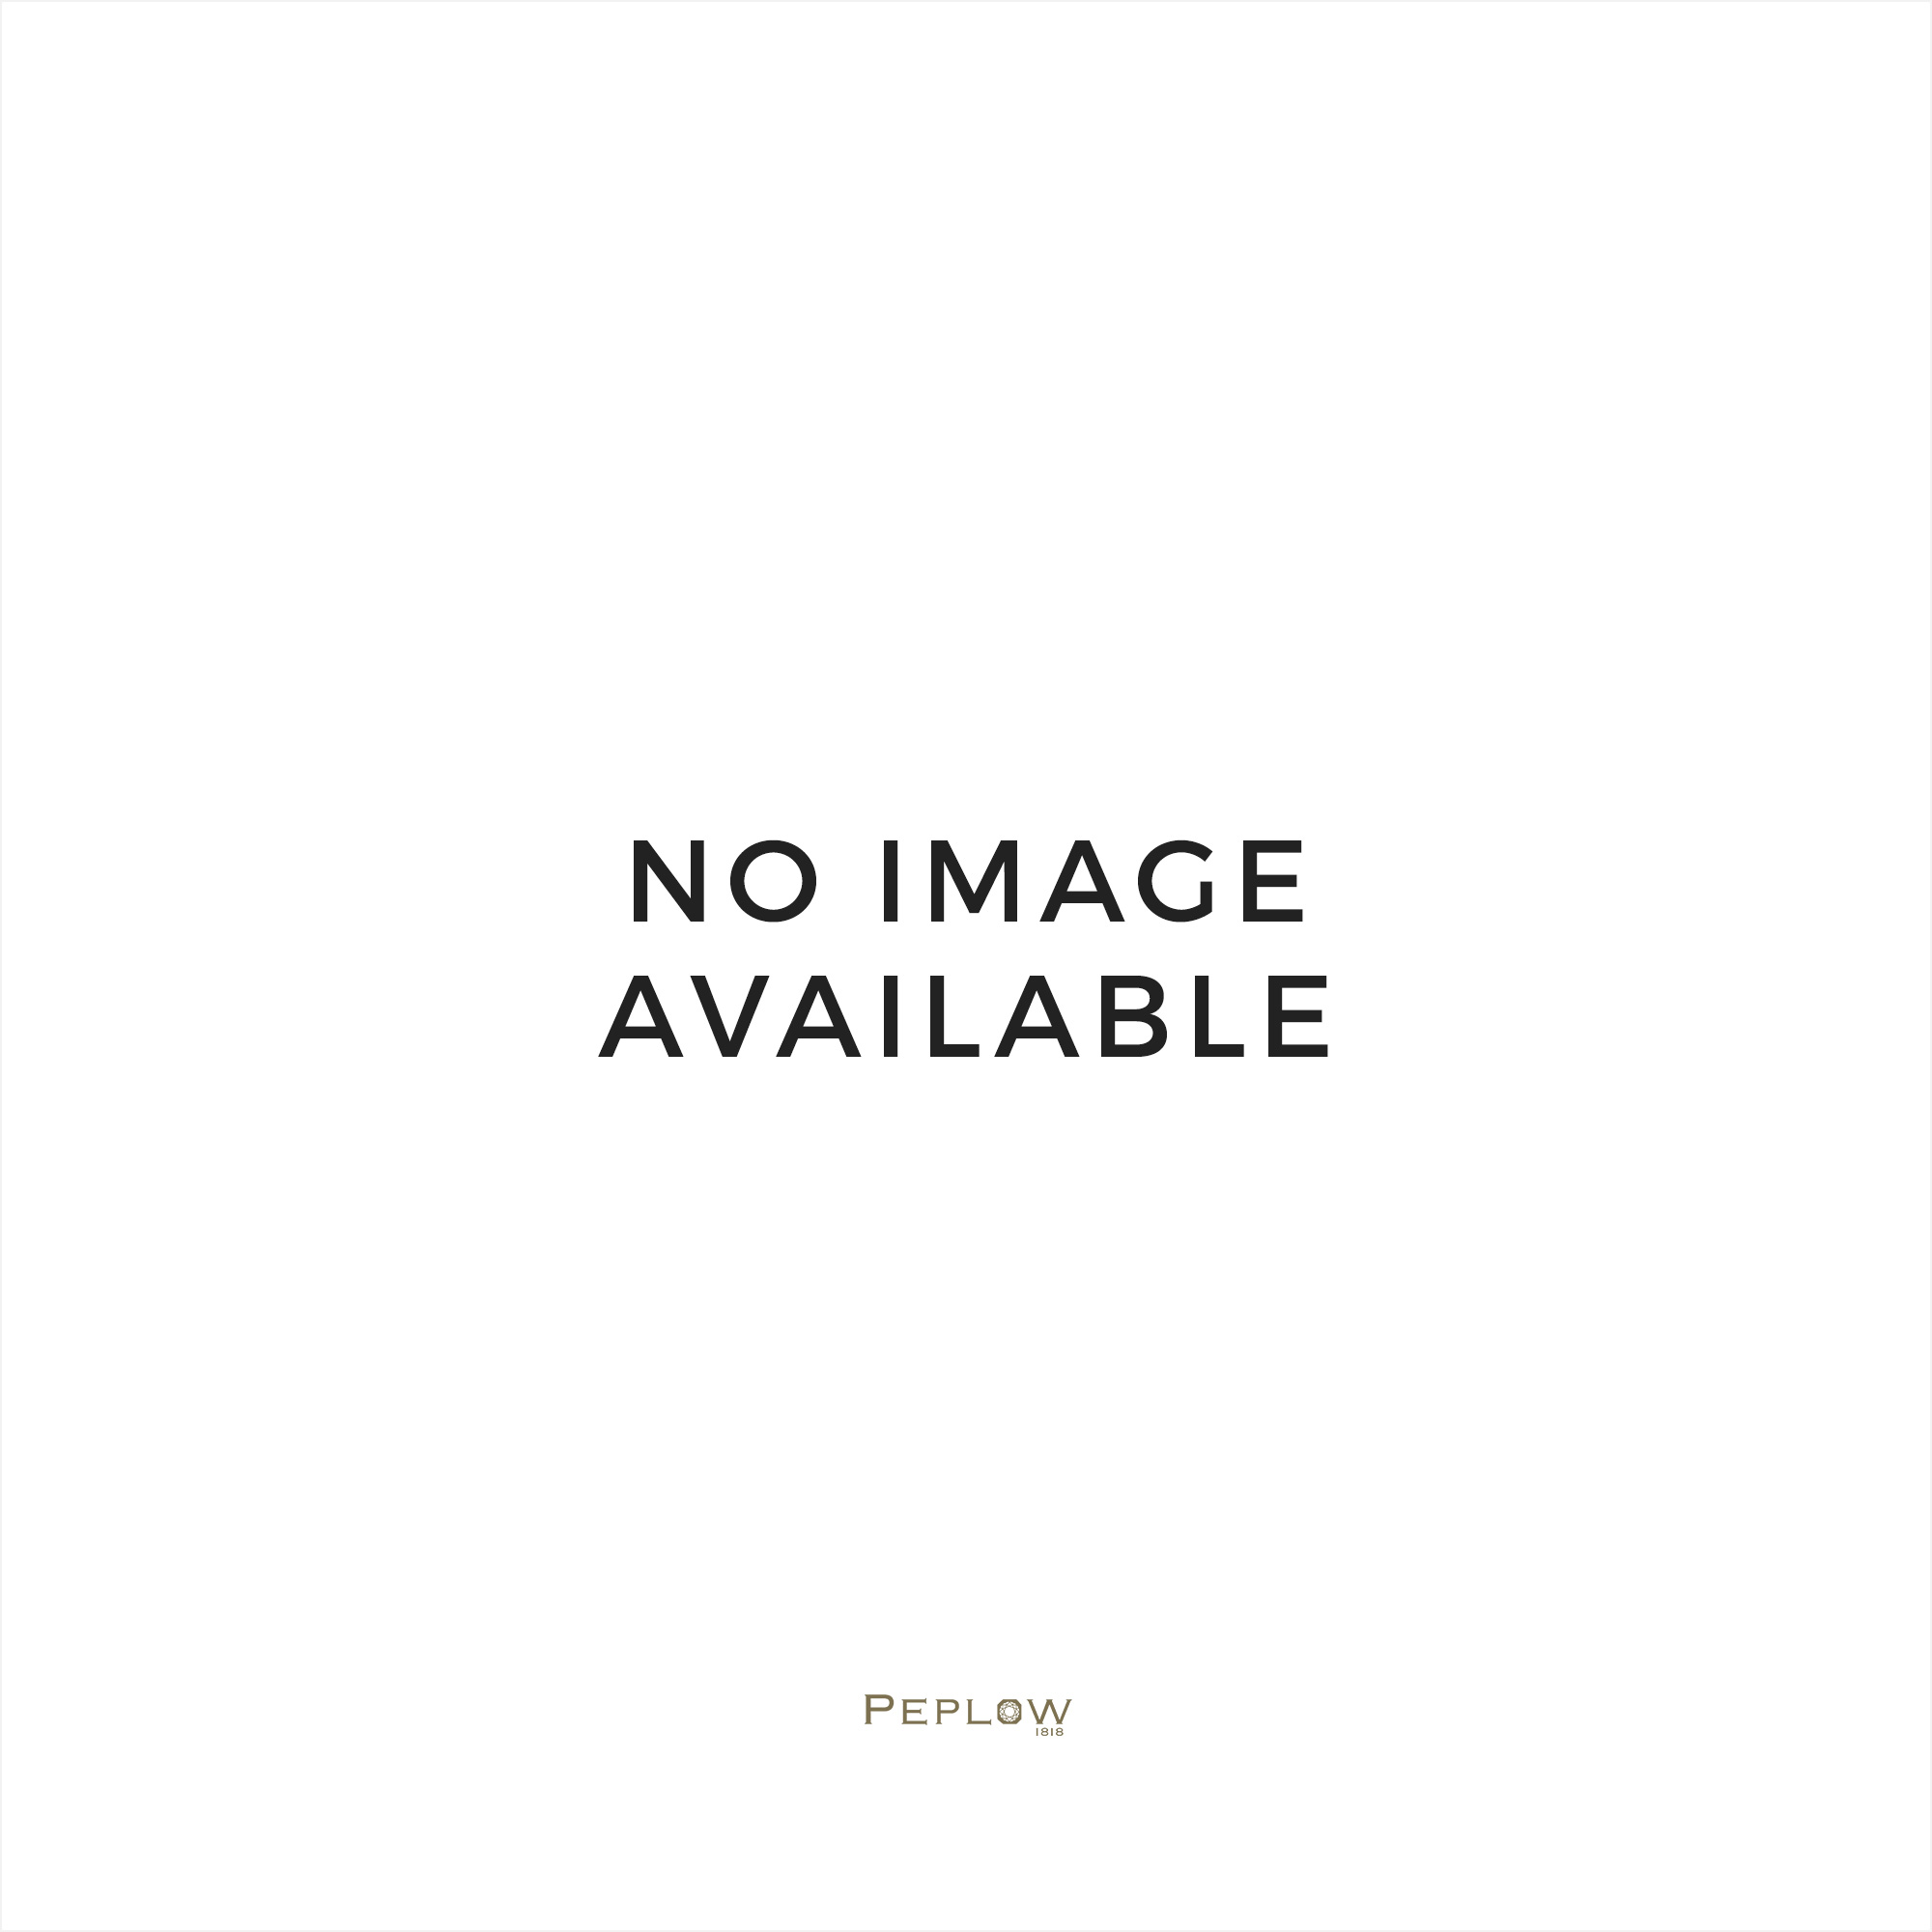 Gents Chrono-Time AT Perpetual Chronograph Eco Drive